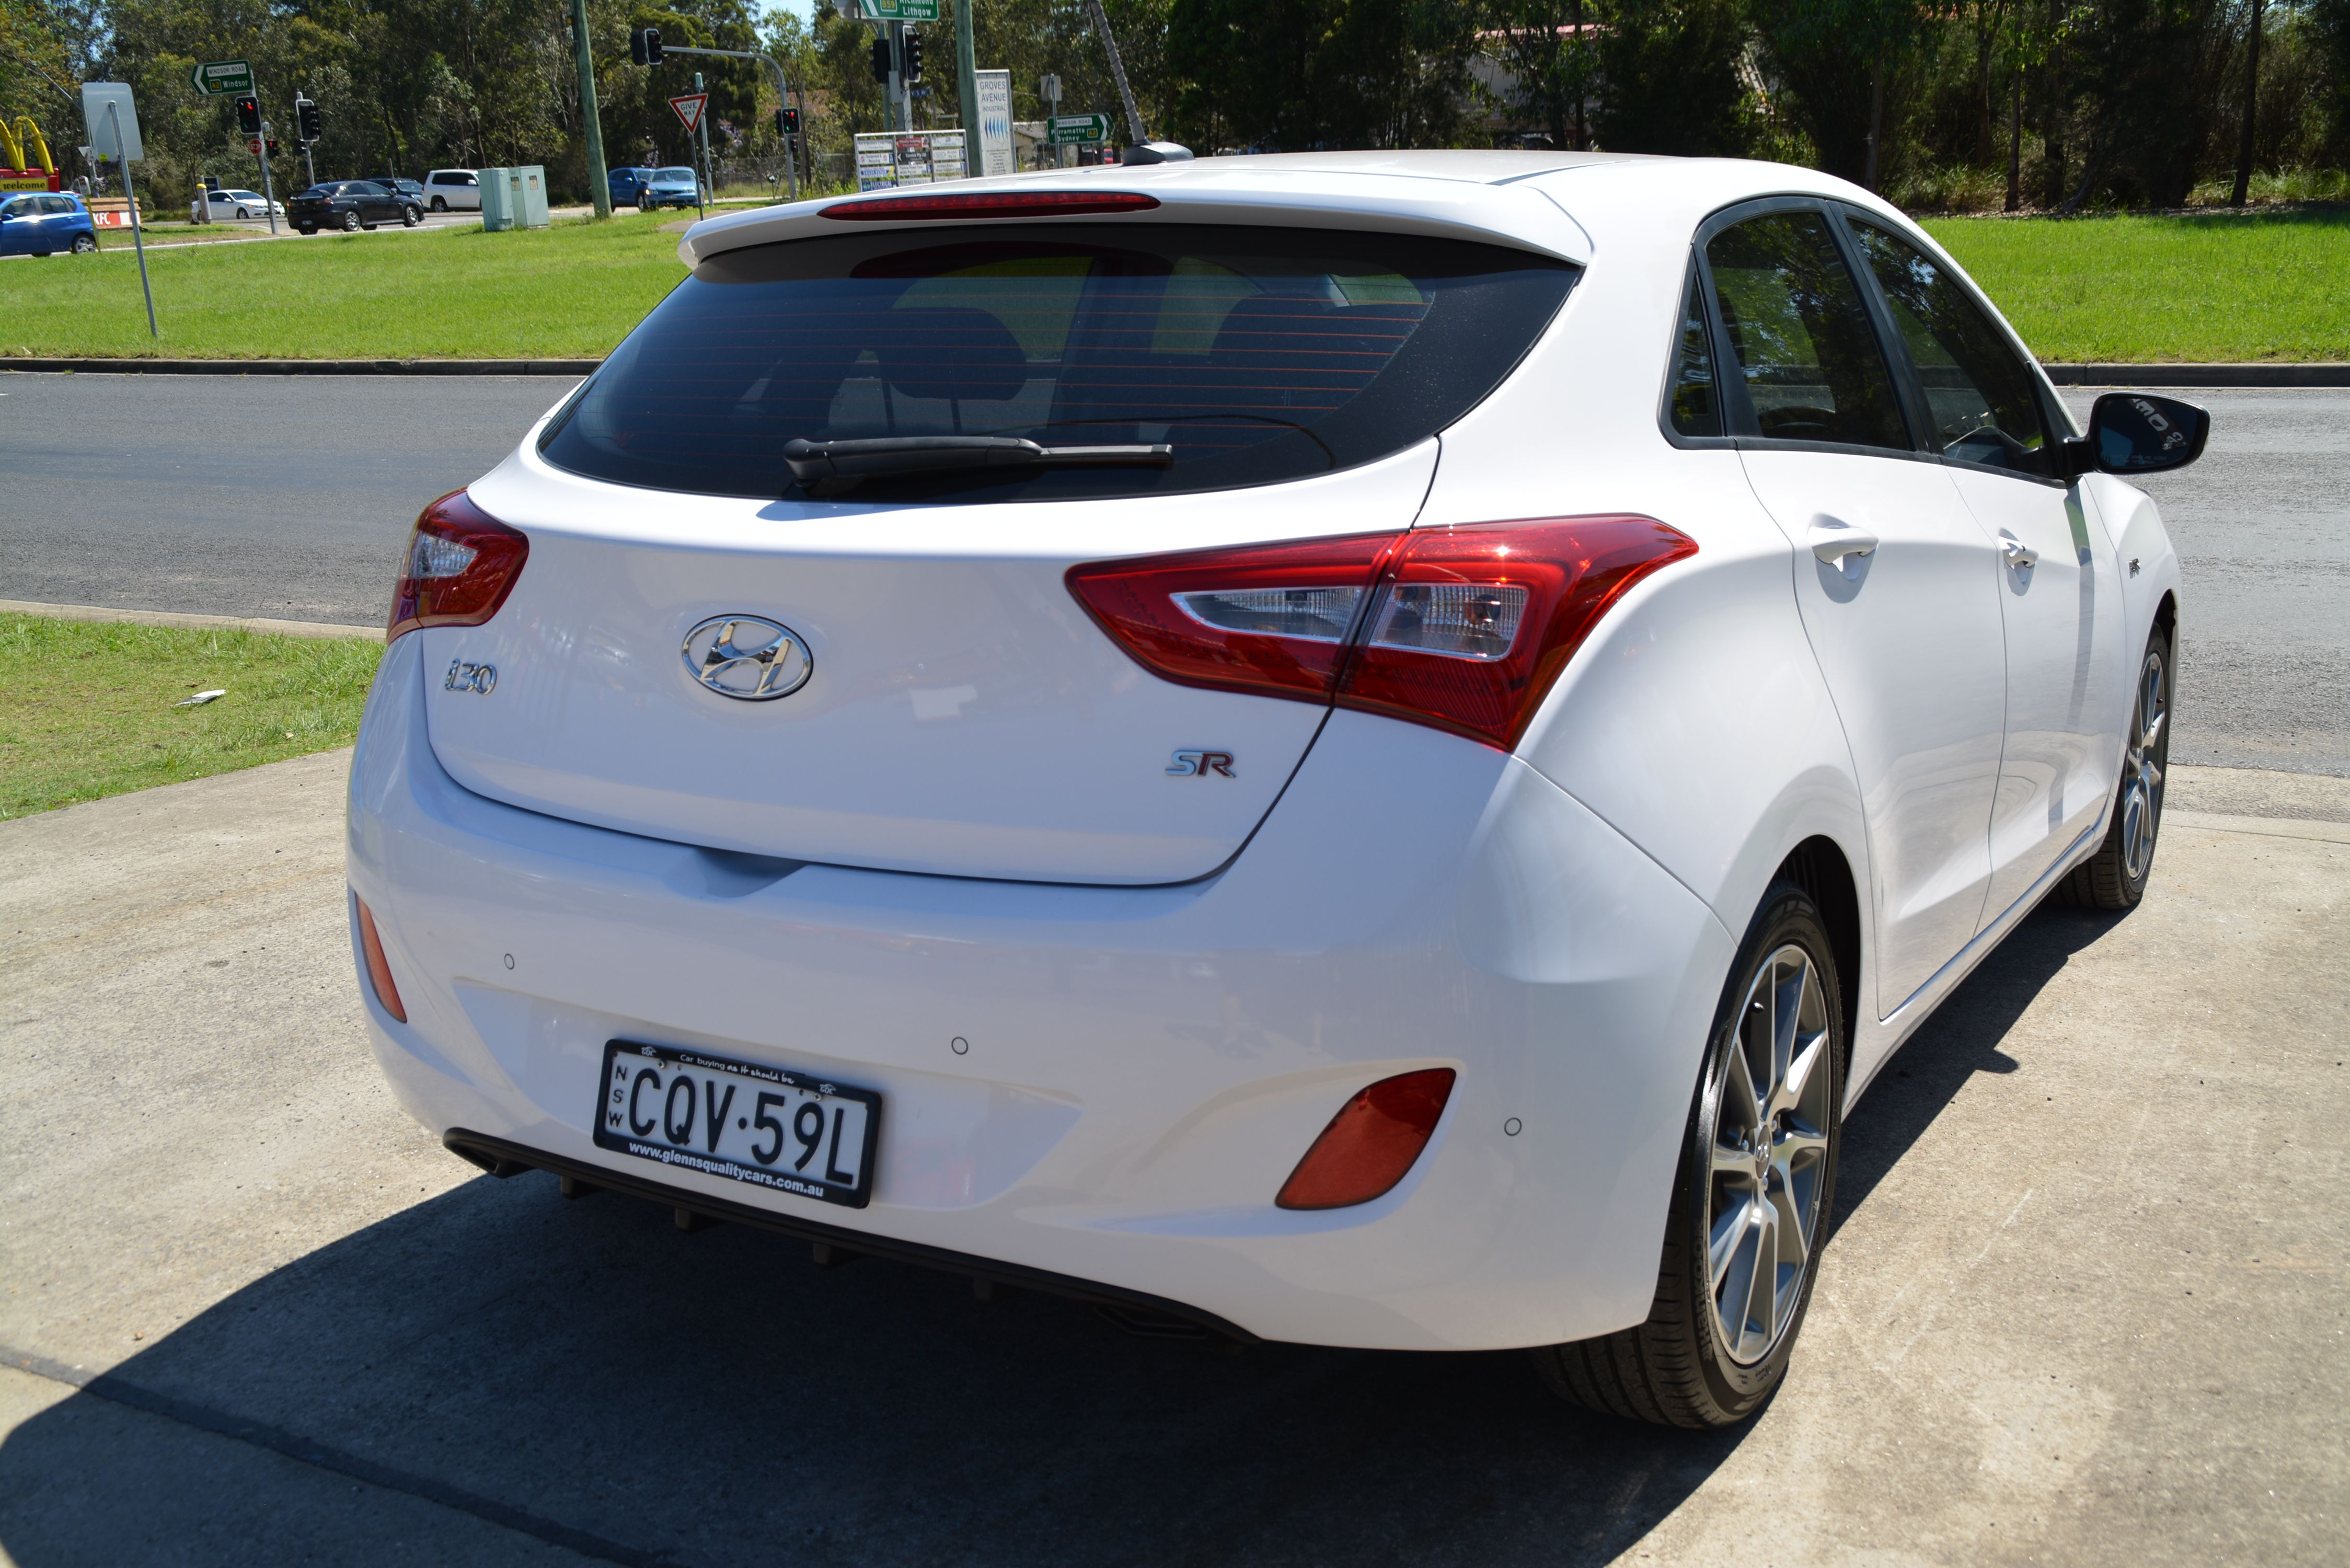 2013 Hyundai i30 SR Hatchback $19 999 3 Groves